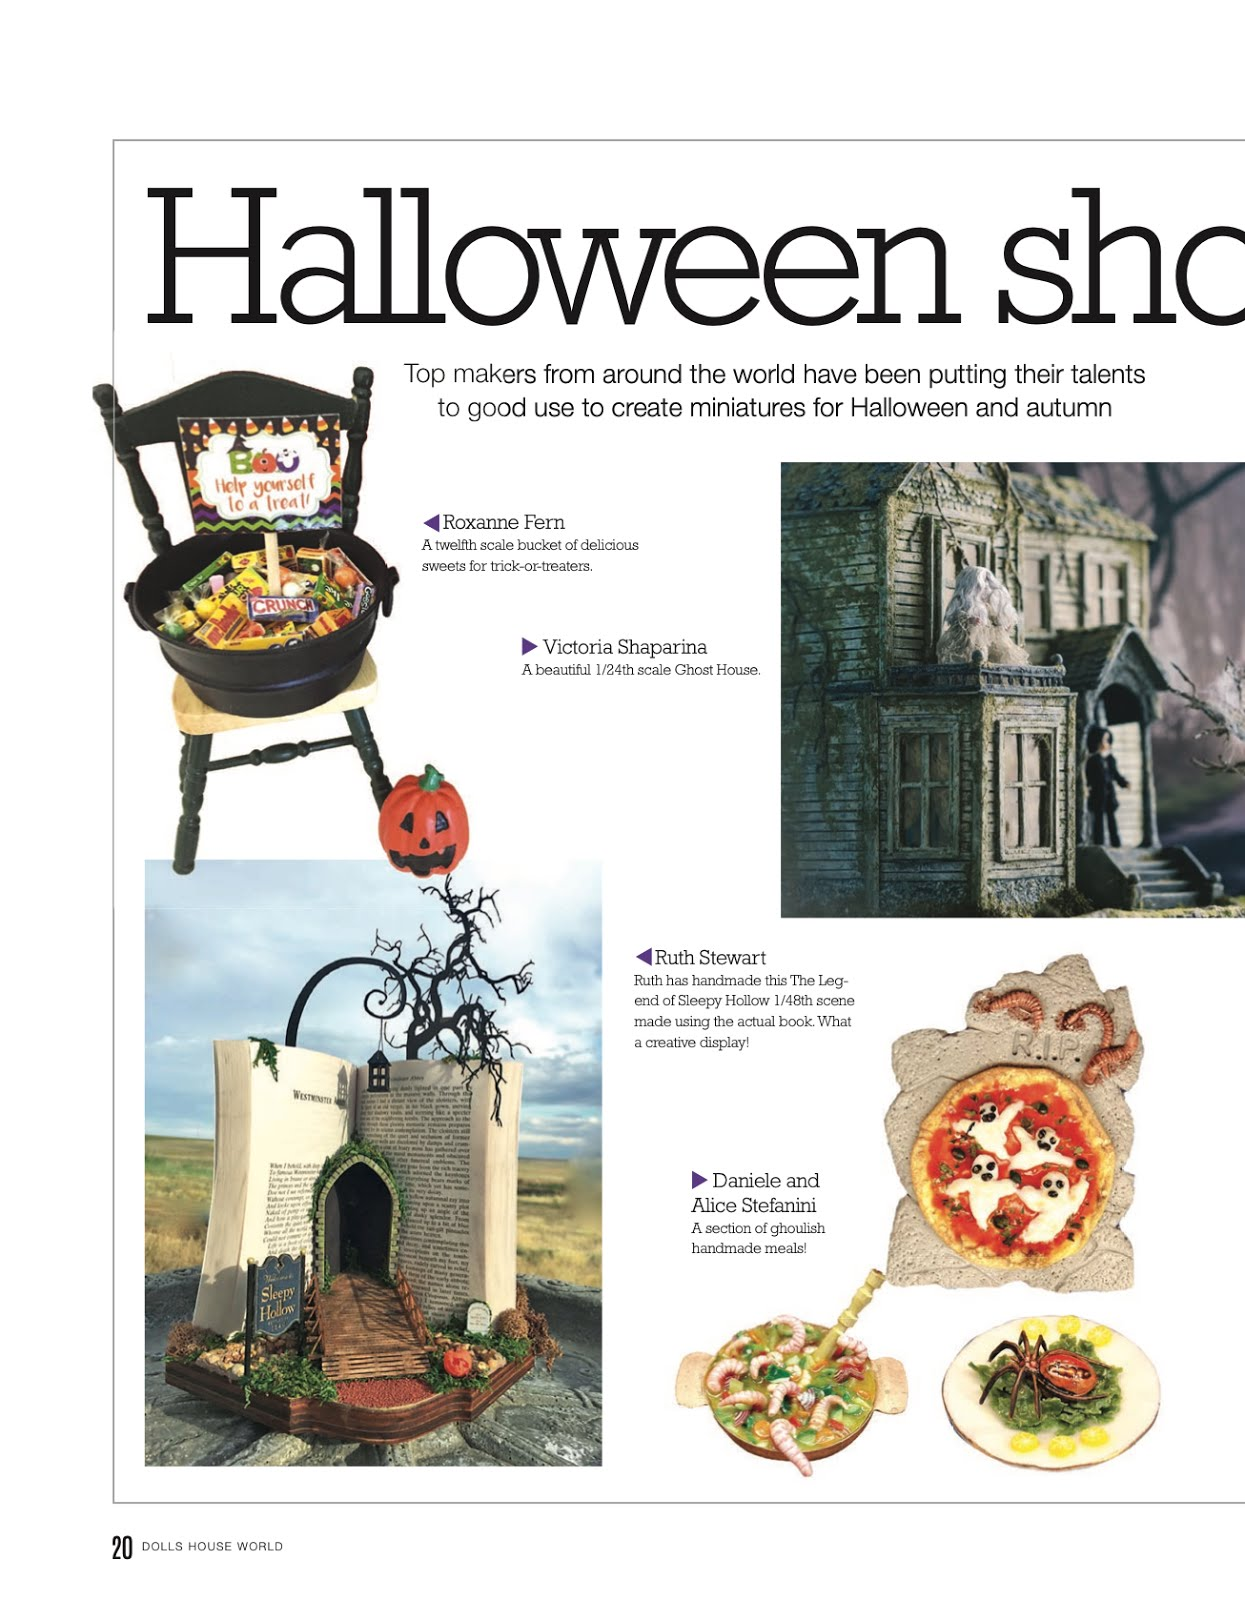 DollsHouse World Magazine October 2019 Issue #325